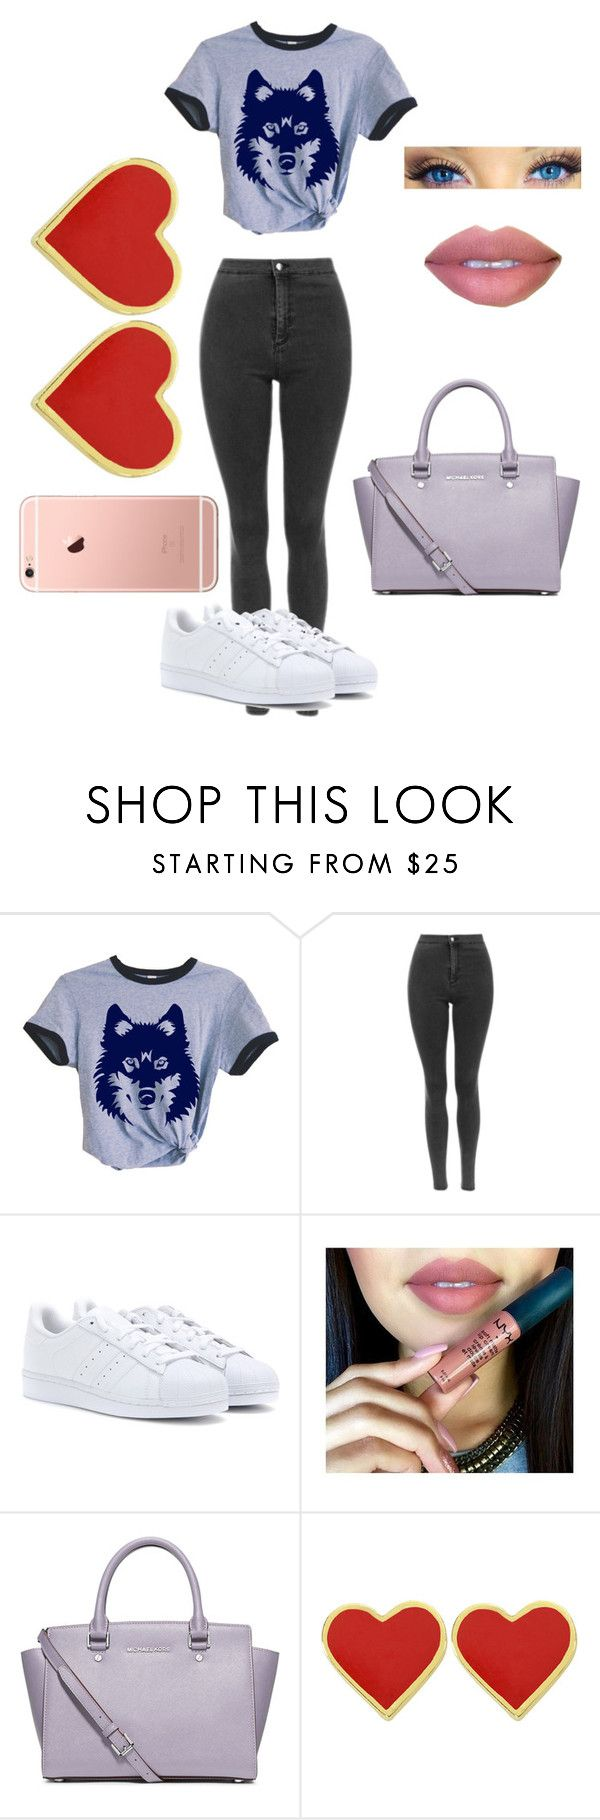 """carmen"" by lauraederveen on Polyvore featuring adidas and MICHAEL Michael Kors"